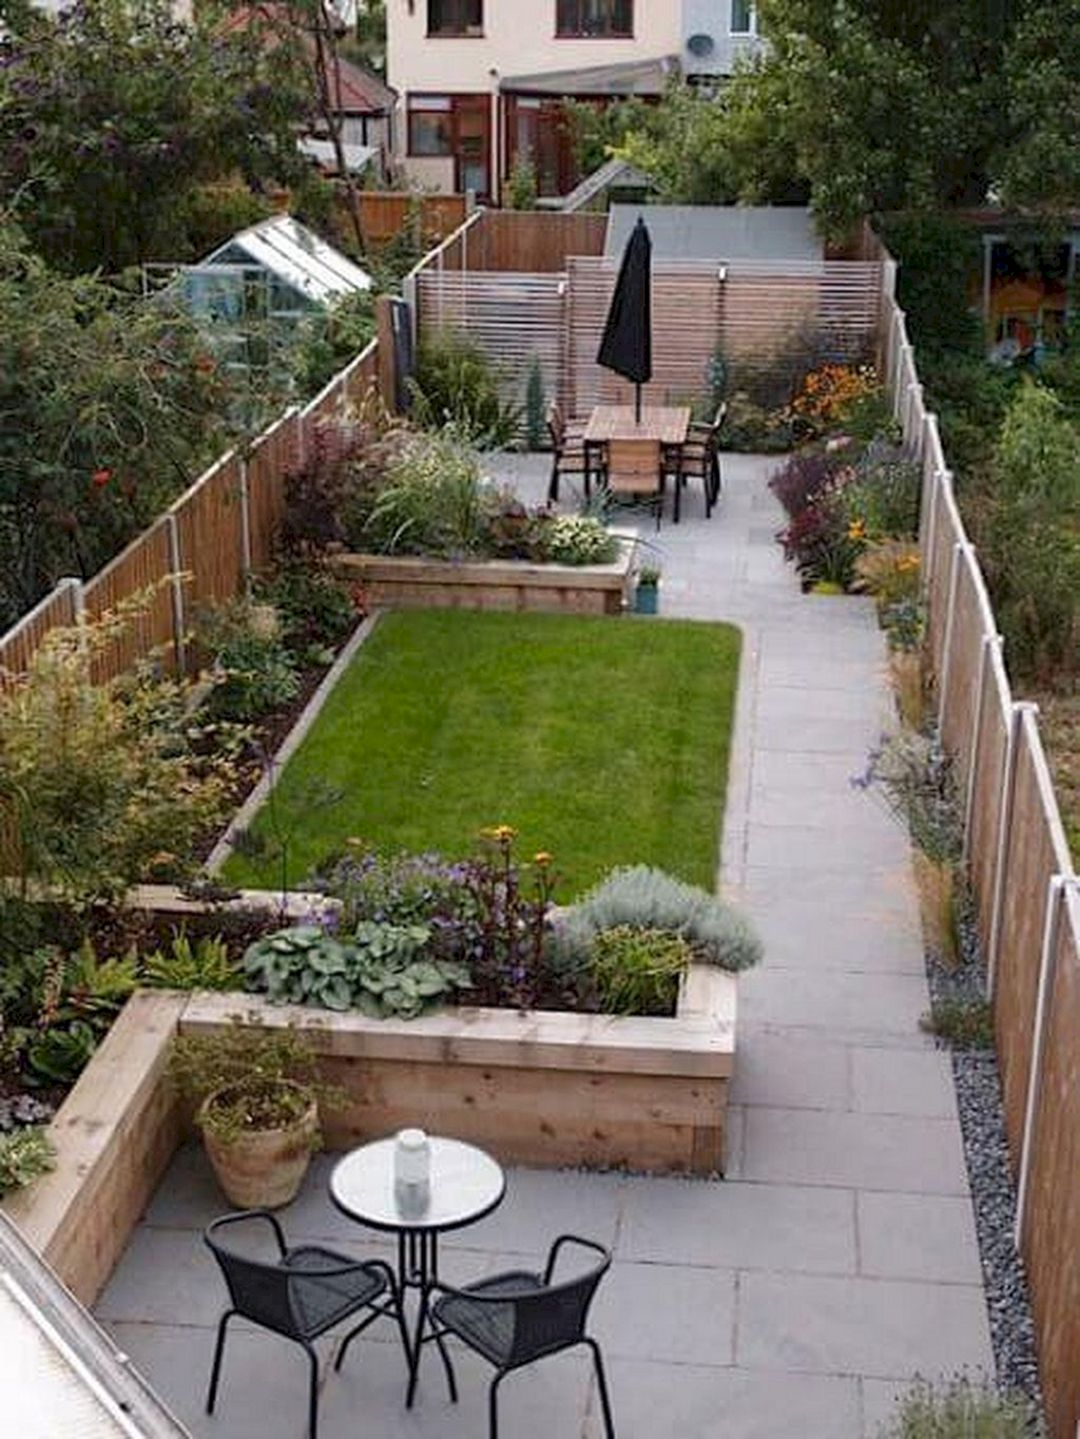 80 super cool backyards design for your perfect home on backyard landscaping ideas with minimum budget id=81843